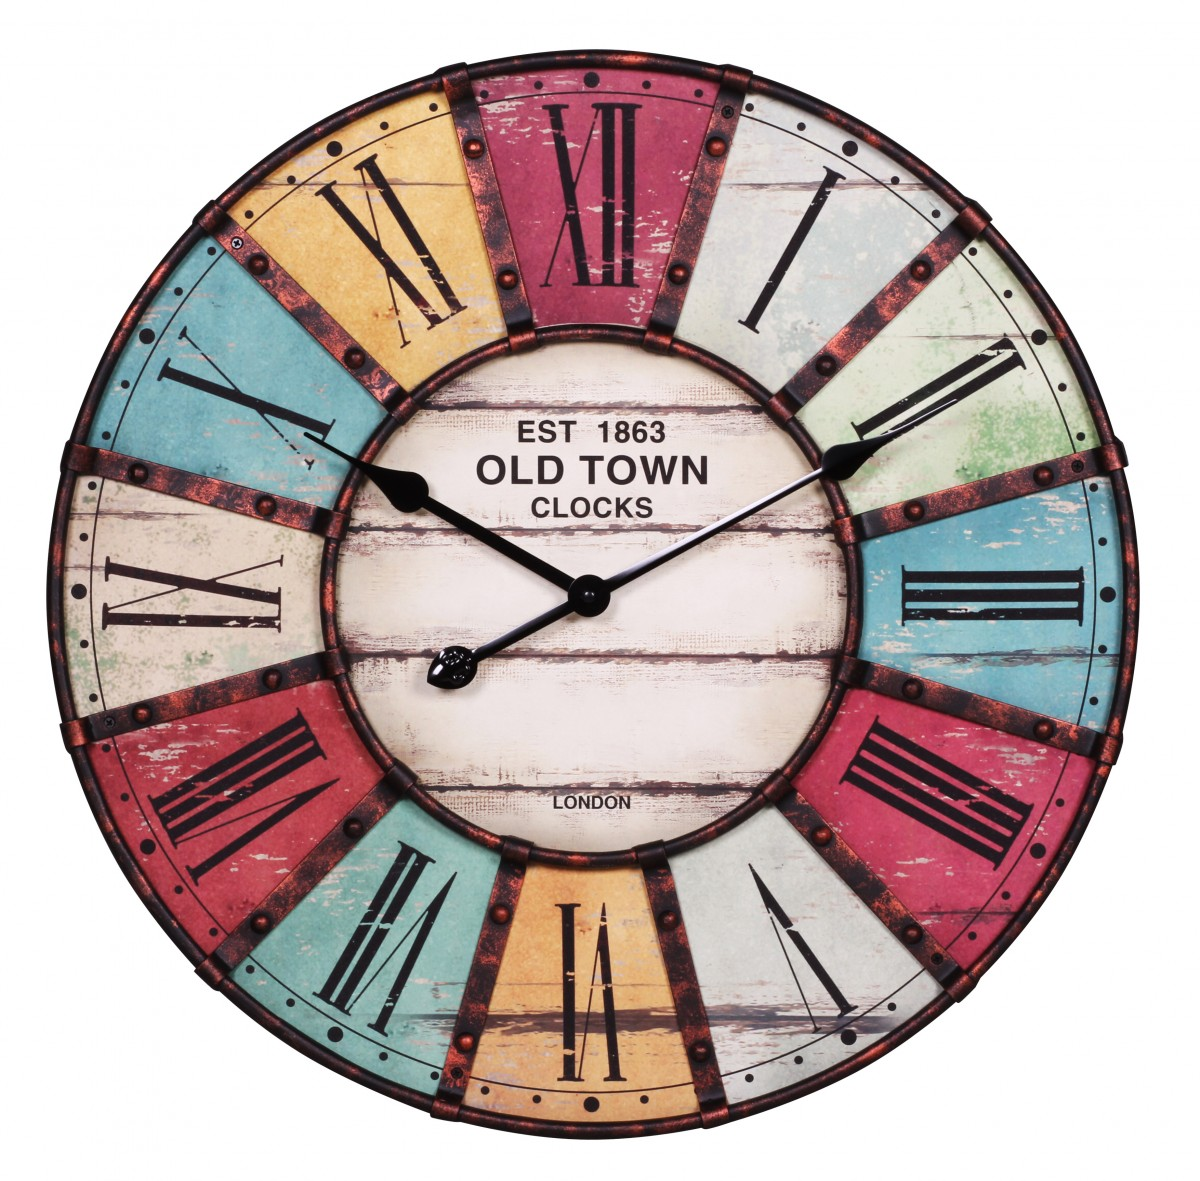 Wall Clock Designs Latest : Wohnling old town cm wall clock design with great